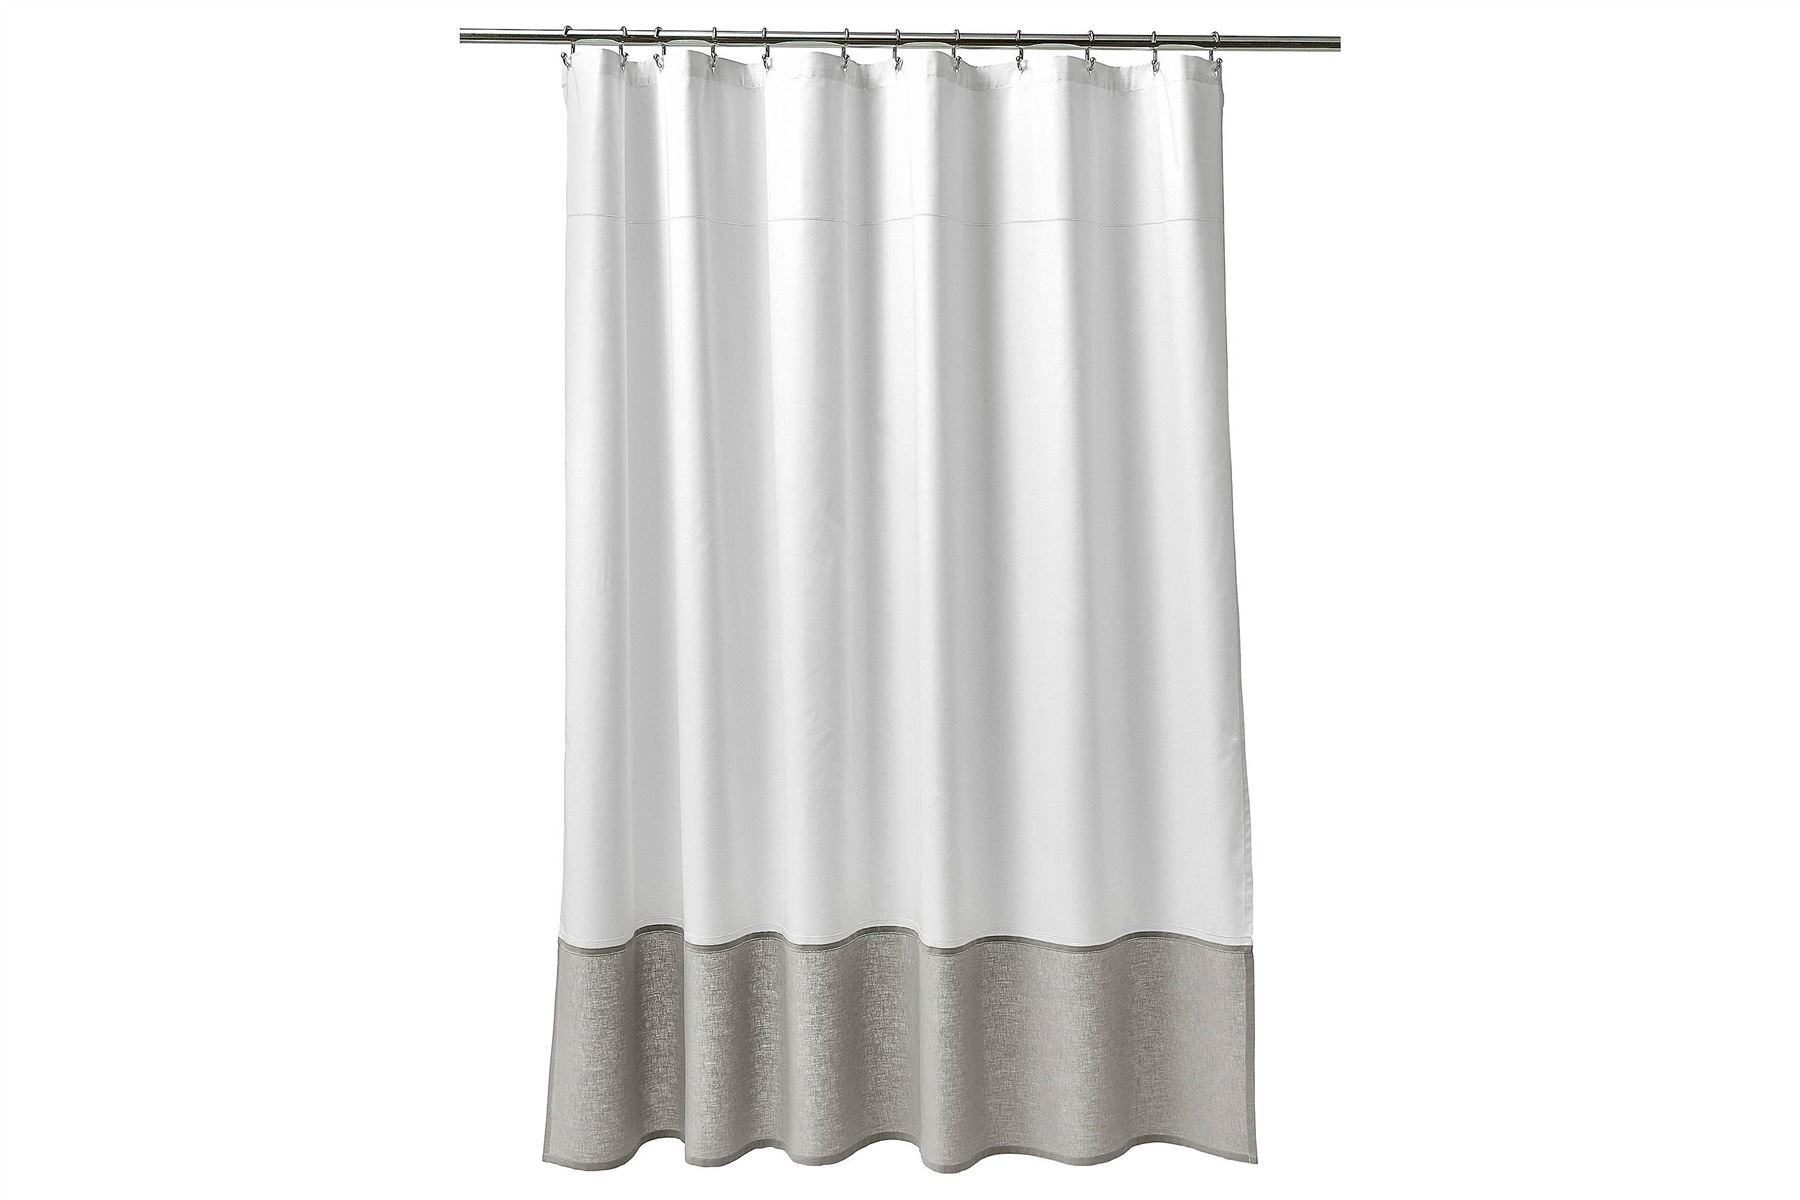 Fieldcrest Shower Curtain White/Grey Oxford Stitch